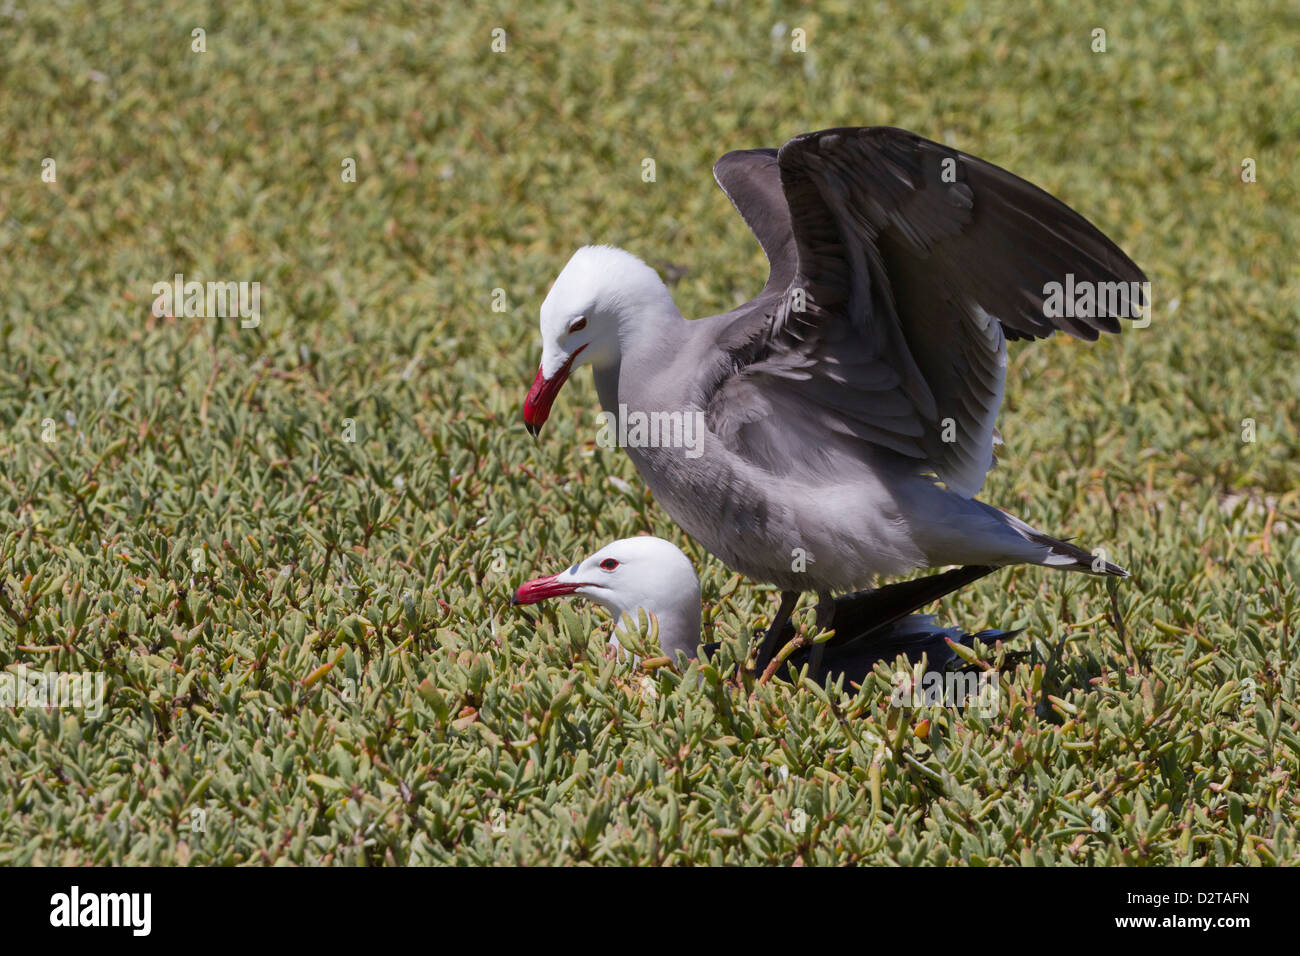 Heermann's gulls (Larus heermanni) mating, Isla Rasa, Gulf of California (Sea of Cortez), Mexico, North America - Stock Image